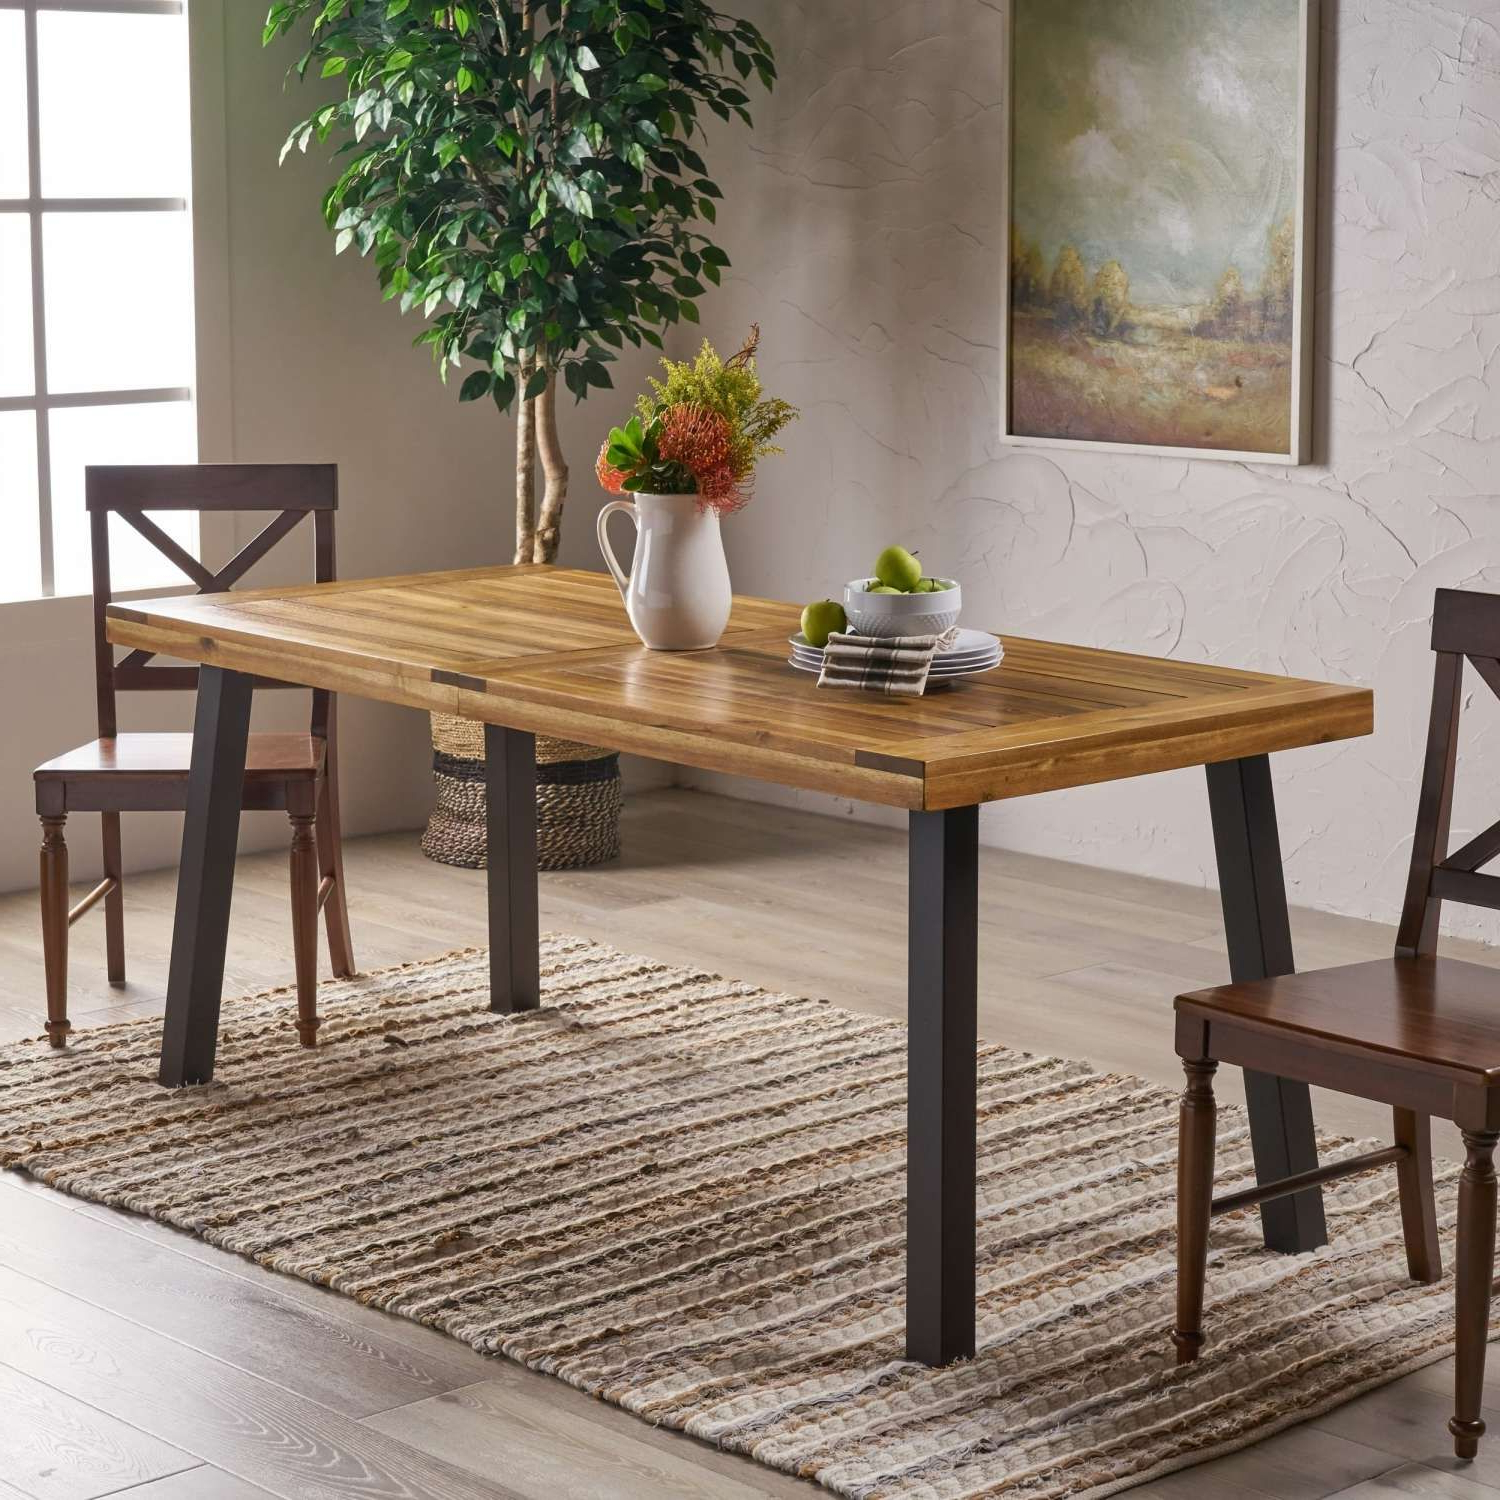 Rectangle Intended For Well Known Transitional 8 Seating Rectangular Helsinki Dining Tables (View 18 of 30)